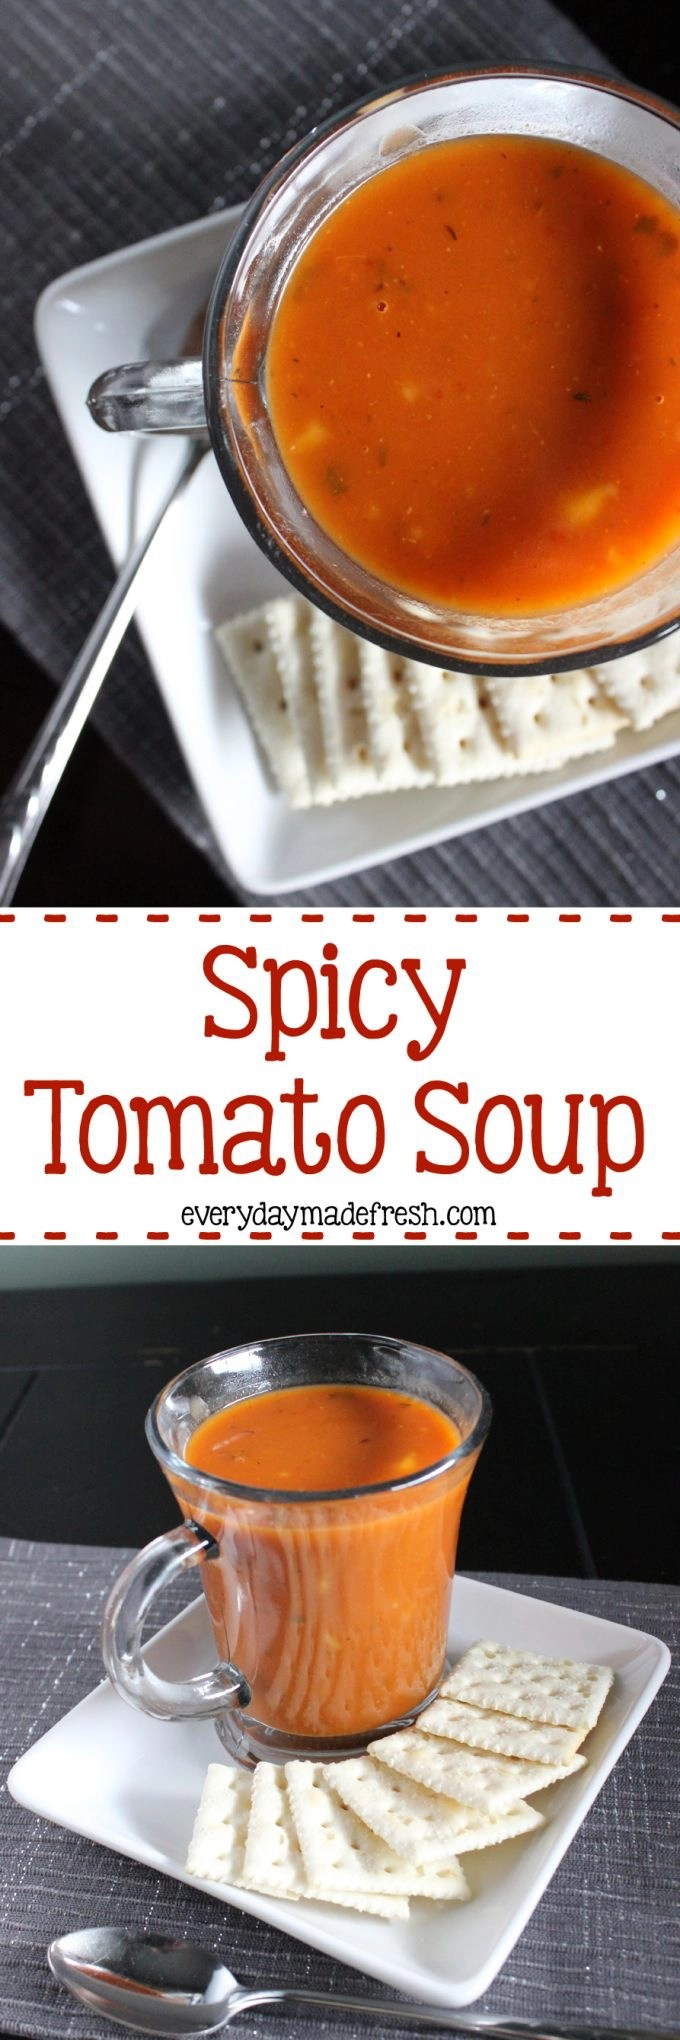 This Spicy Tomato Soup is a quick soup that will be ready in no time, and loved by the whole family! | EverydayMadeFresh.com